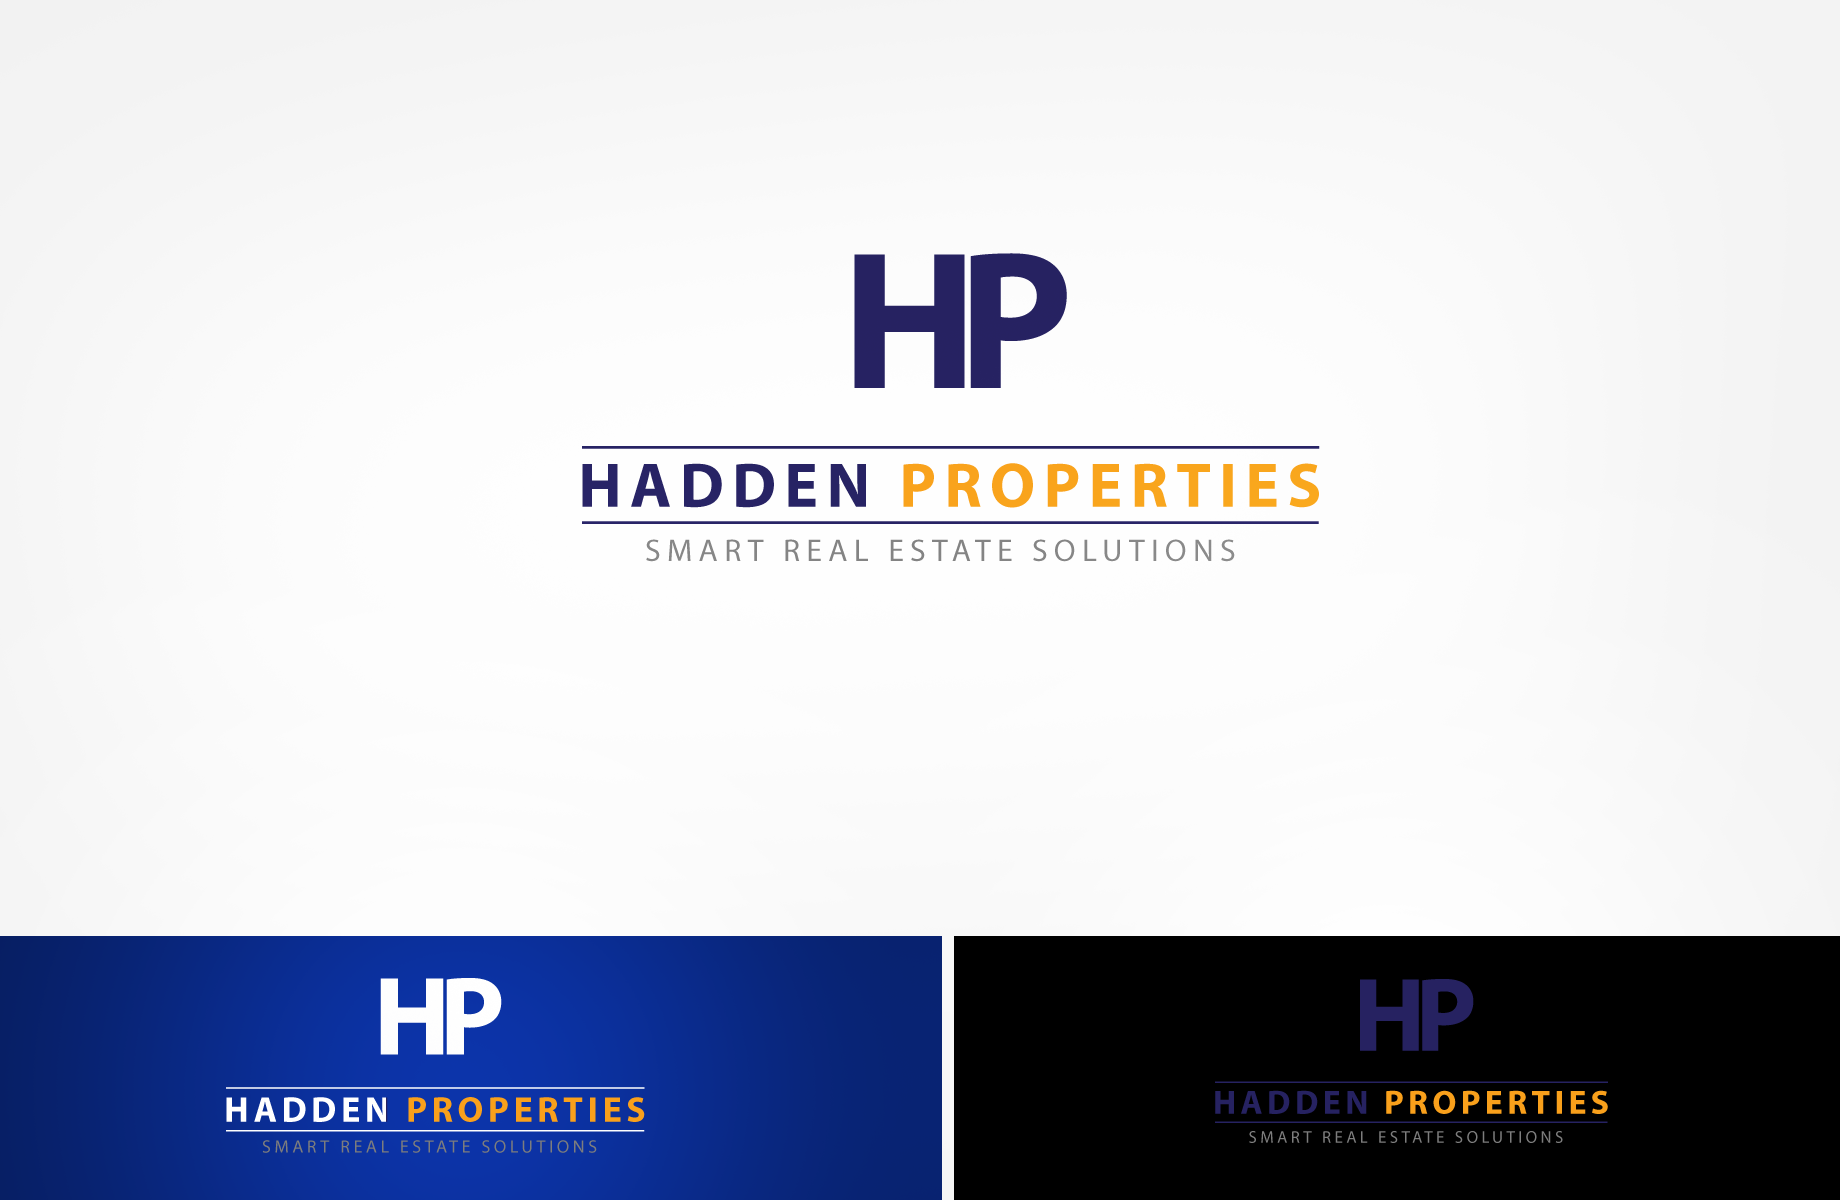 Logo Design by Jan Chua - Entry No. 107 in the Logo Design Contest Artistic Logo Design for Hadden Properties.